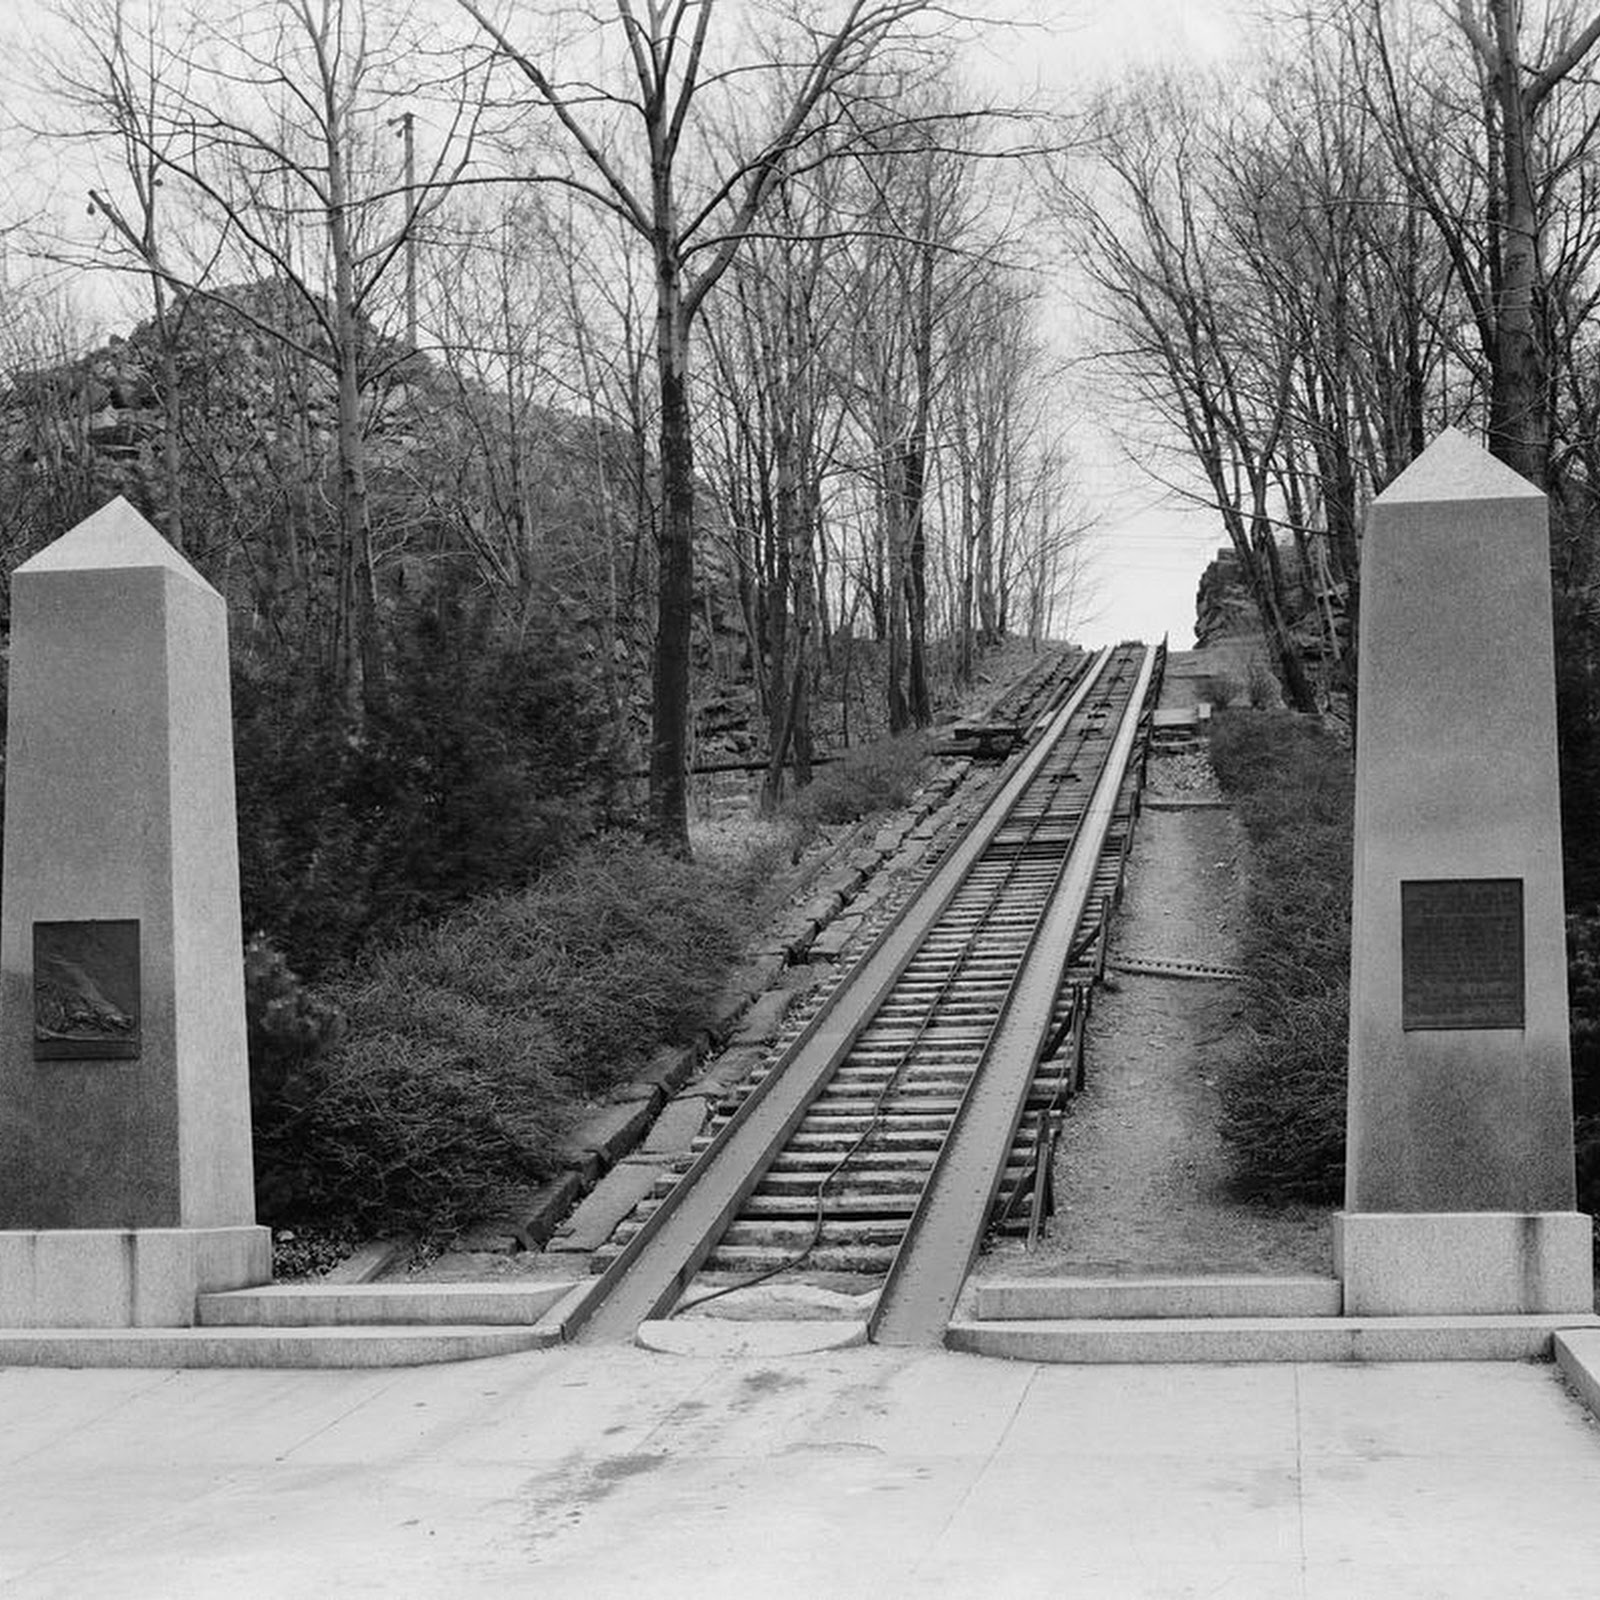 Quincy Granite Railway: America's First Commercial Railroad